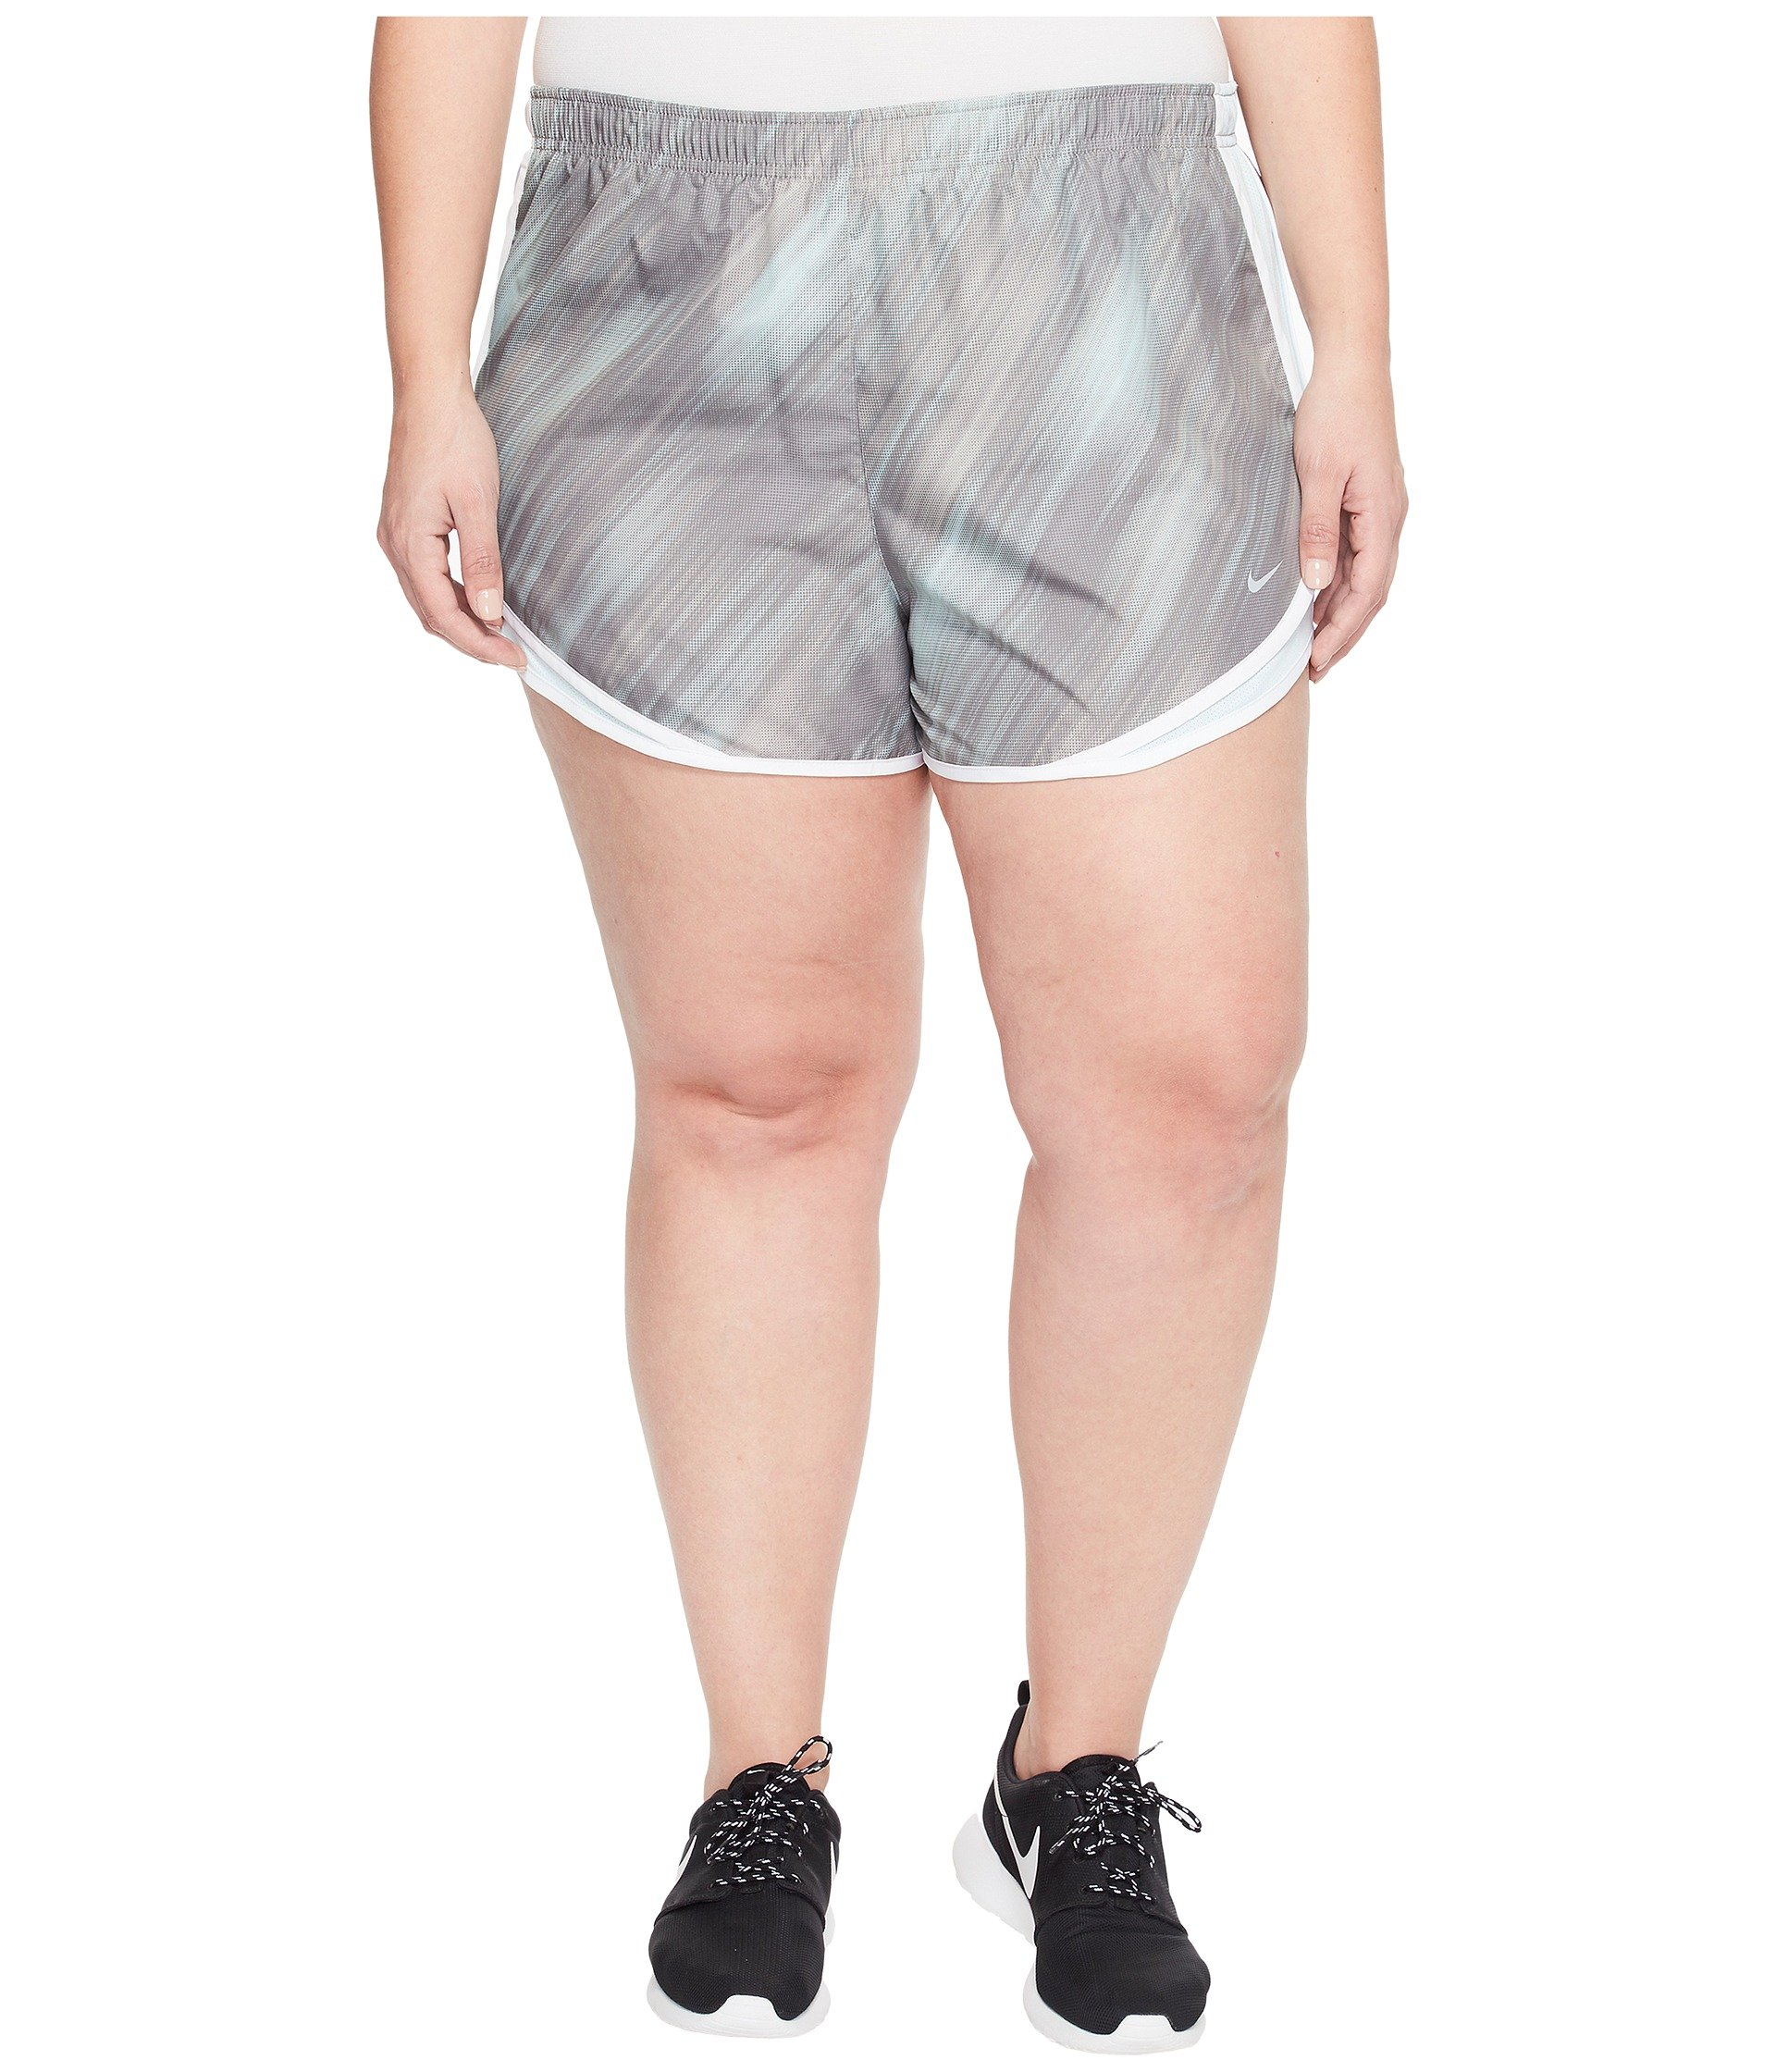 Nike Dry Tempo 3 Print Running Short Size 1X-3X Dust/Glacier Blue/White/Wolf Grey Women's Shorts by Nike